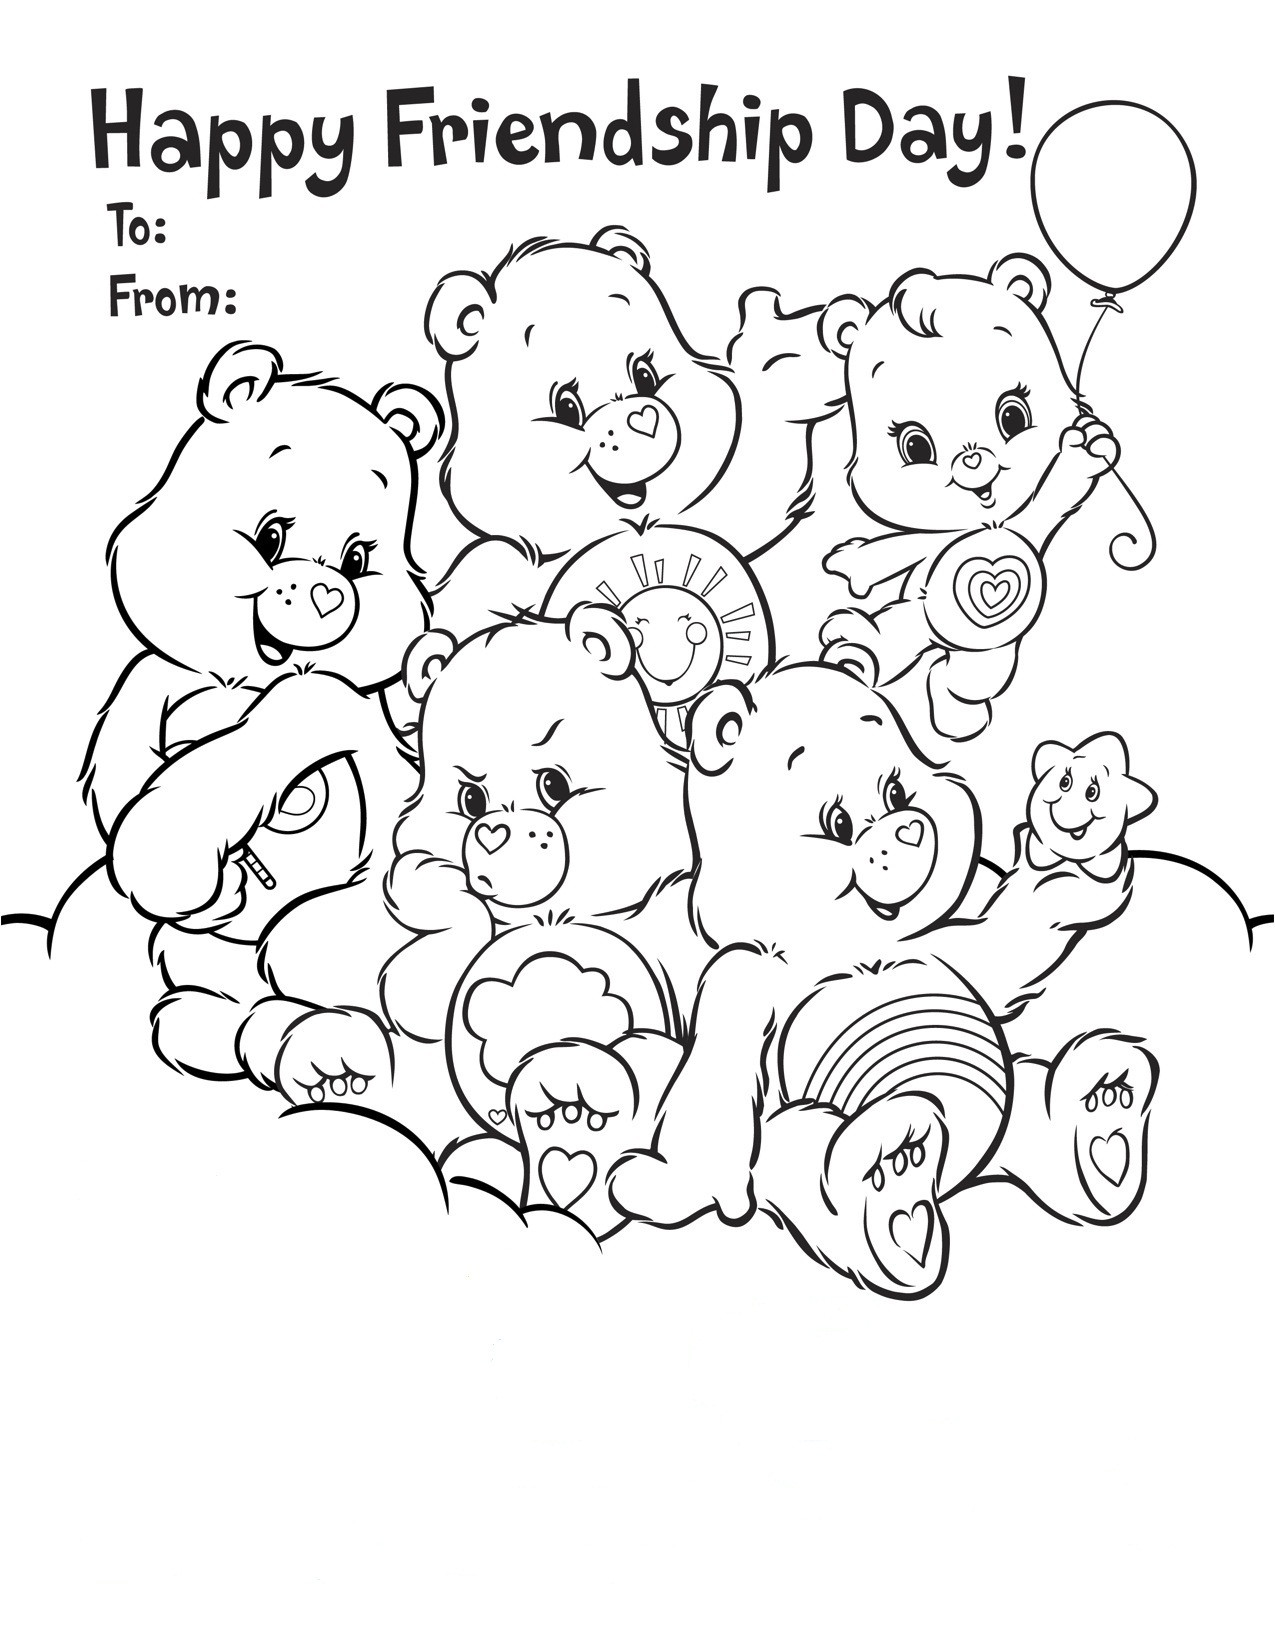 Friendship Coloring Pages For Girls  Best Friend Quotes Coloring Pages QuotesGram